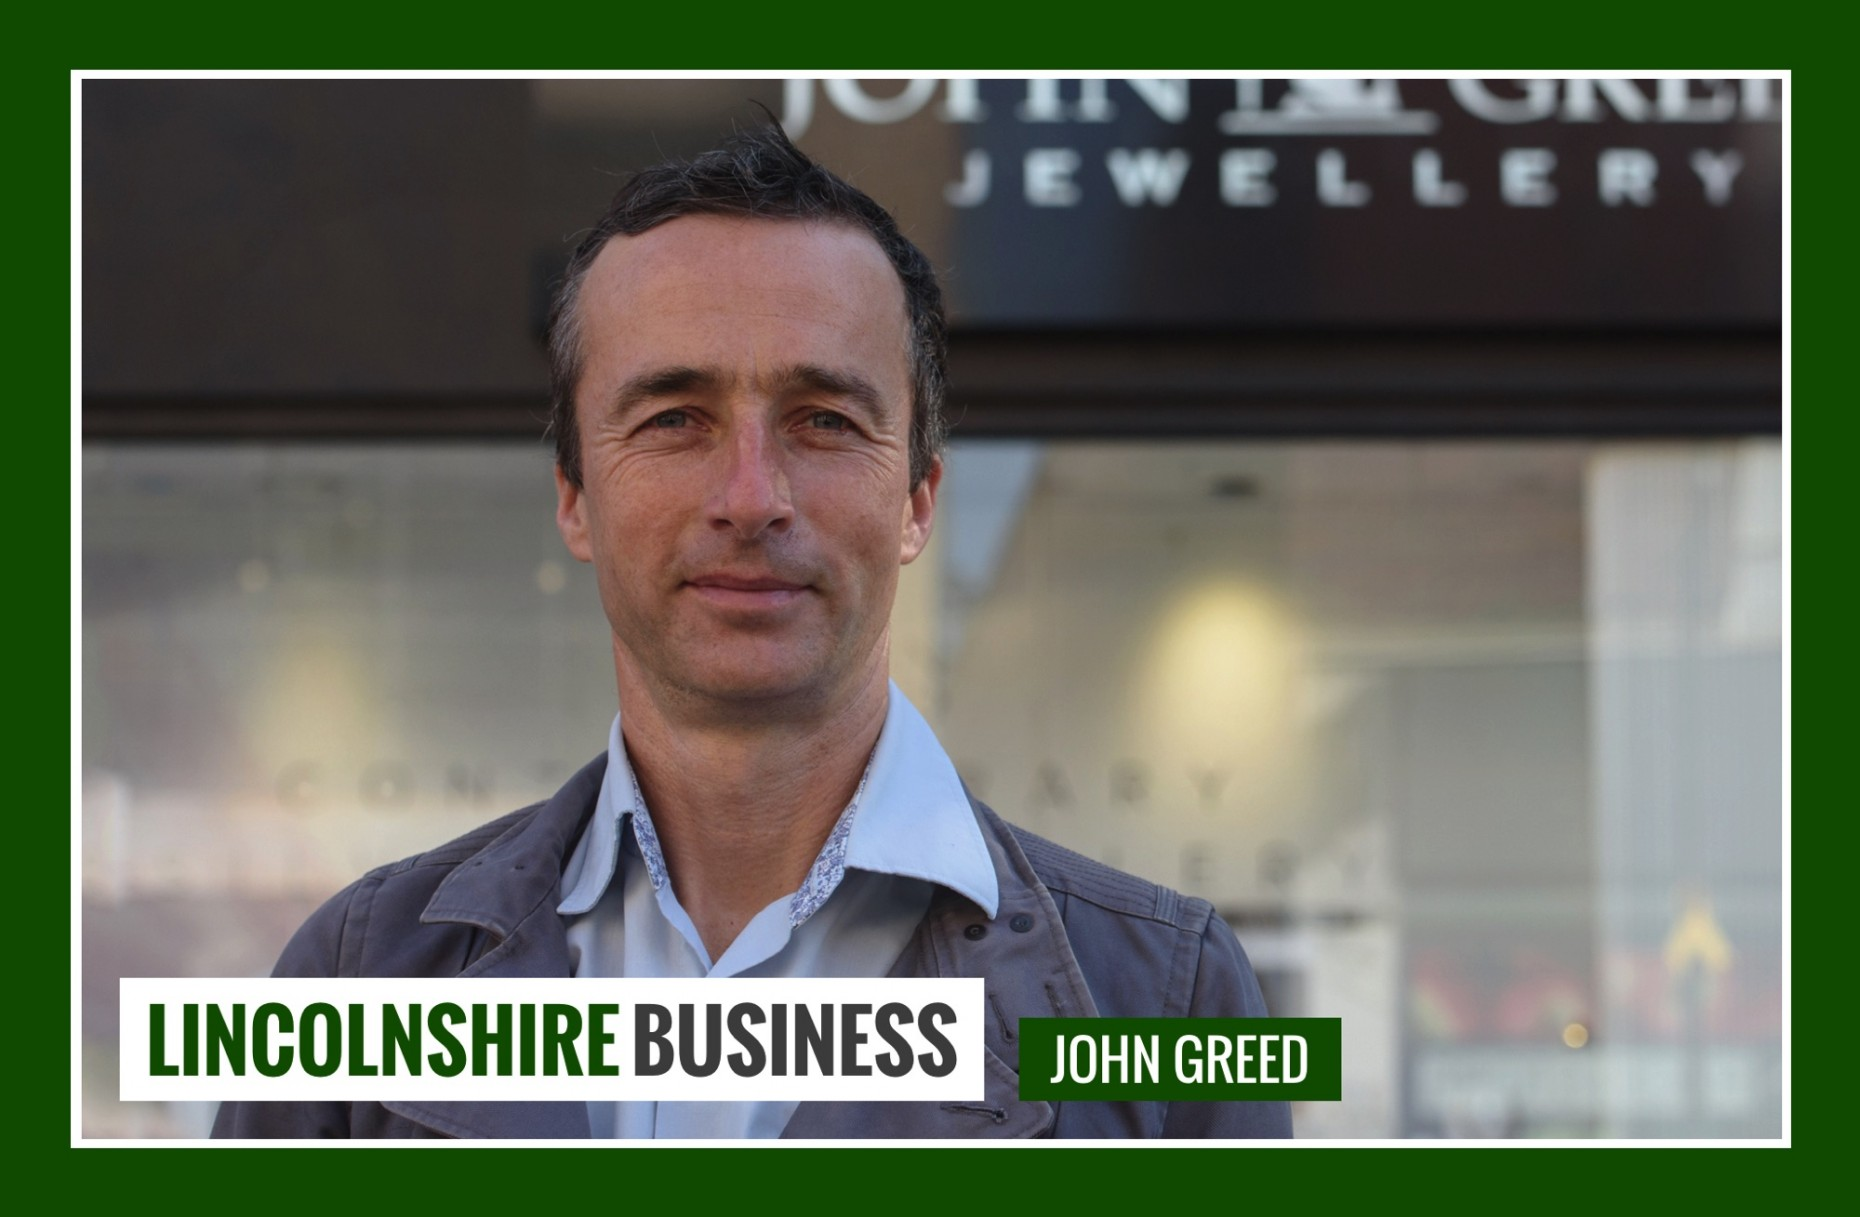 Lincolnshire Business 53 John Greed